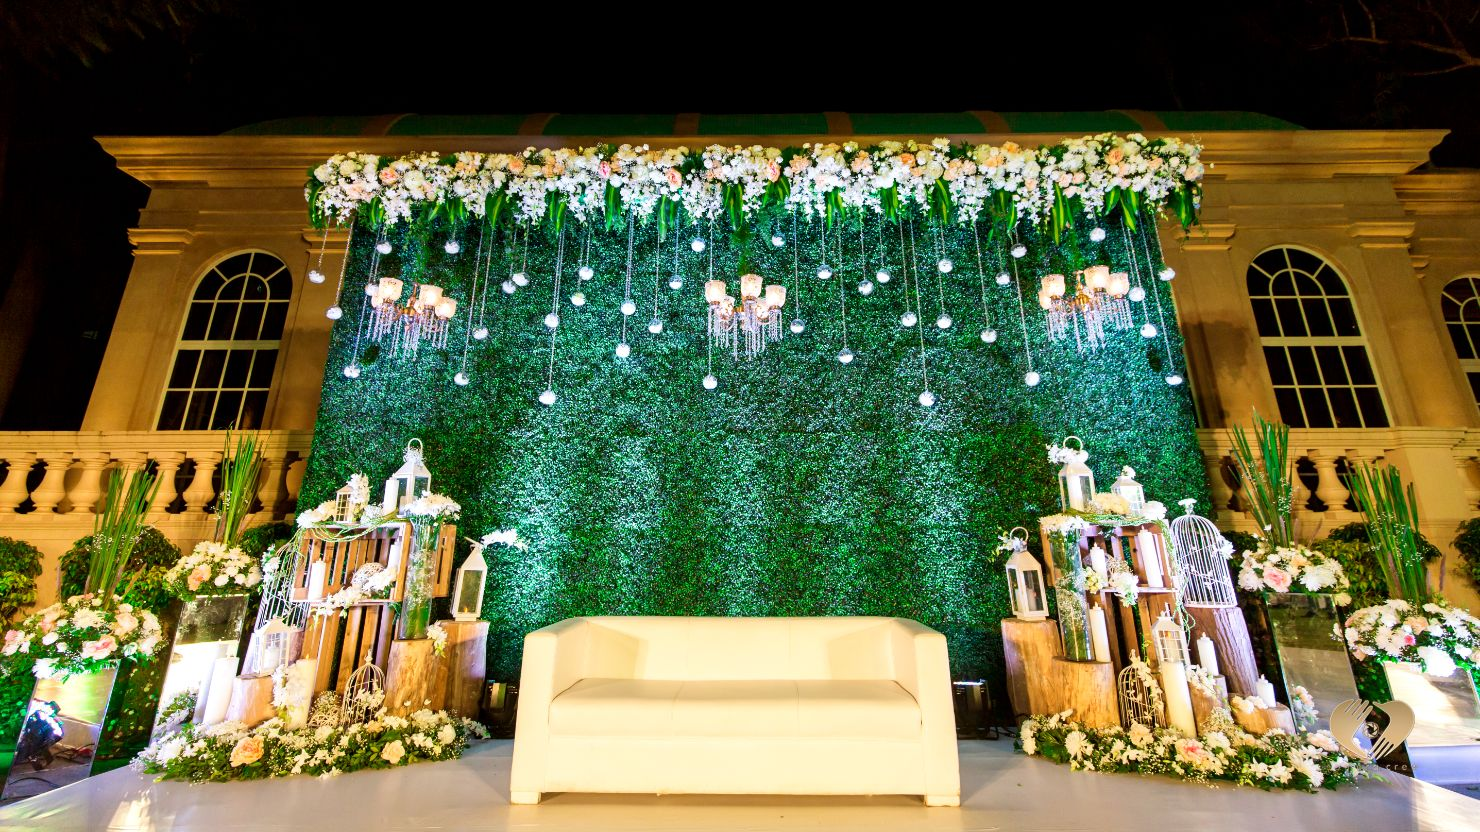 Floral Wedding Stage Decor with Green Wall Backdrop & Chandeliers